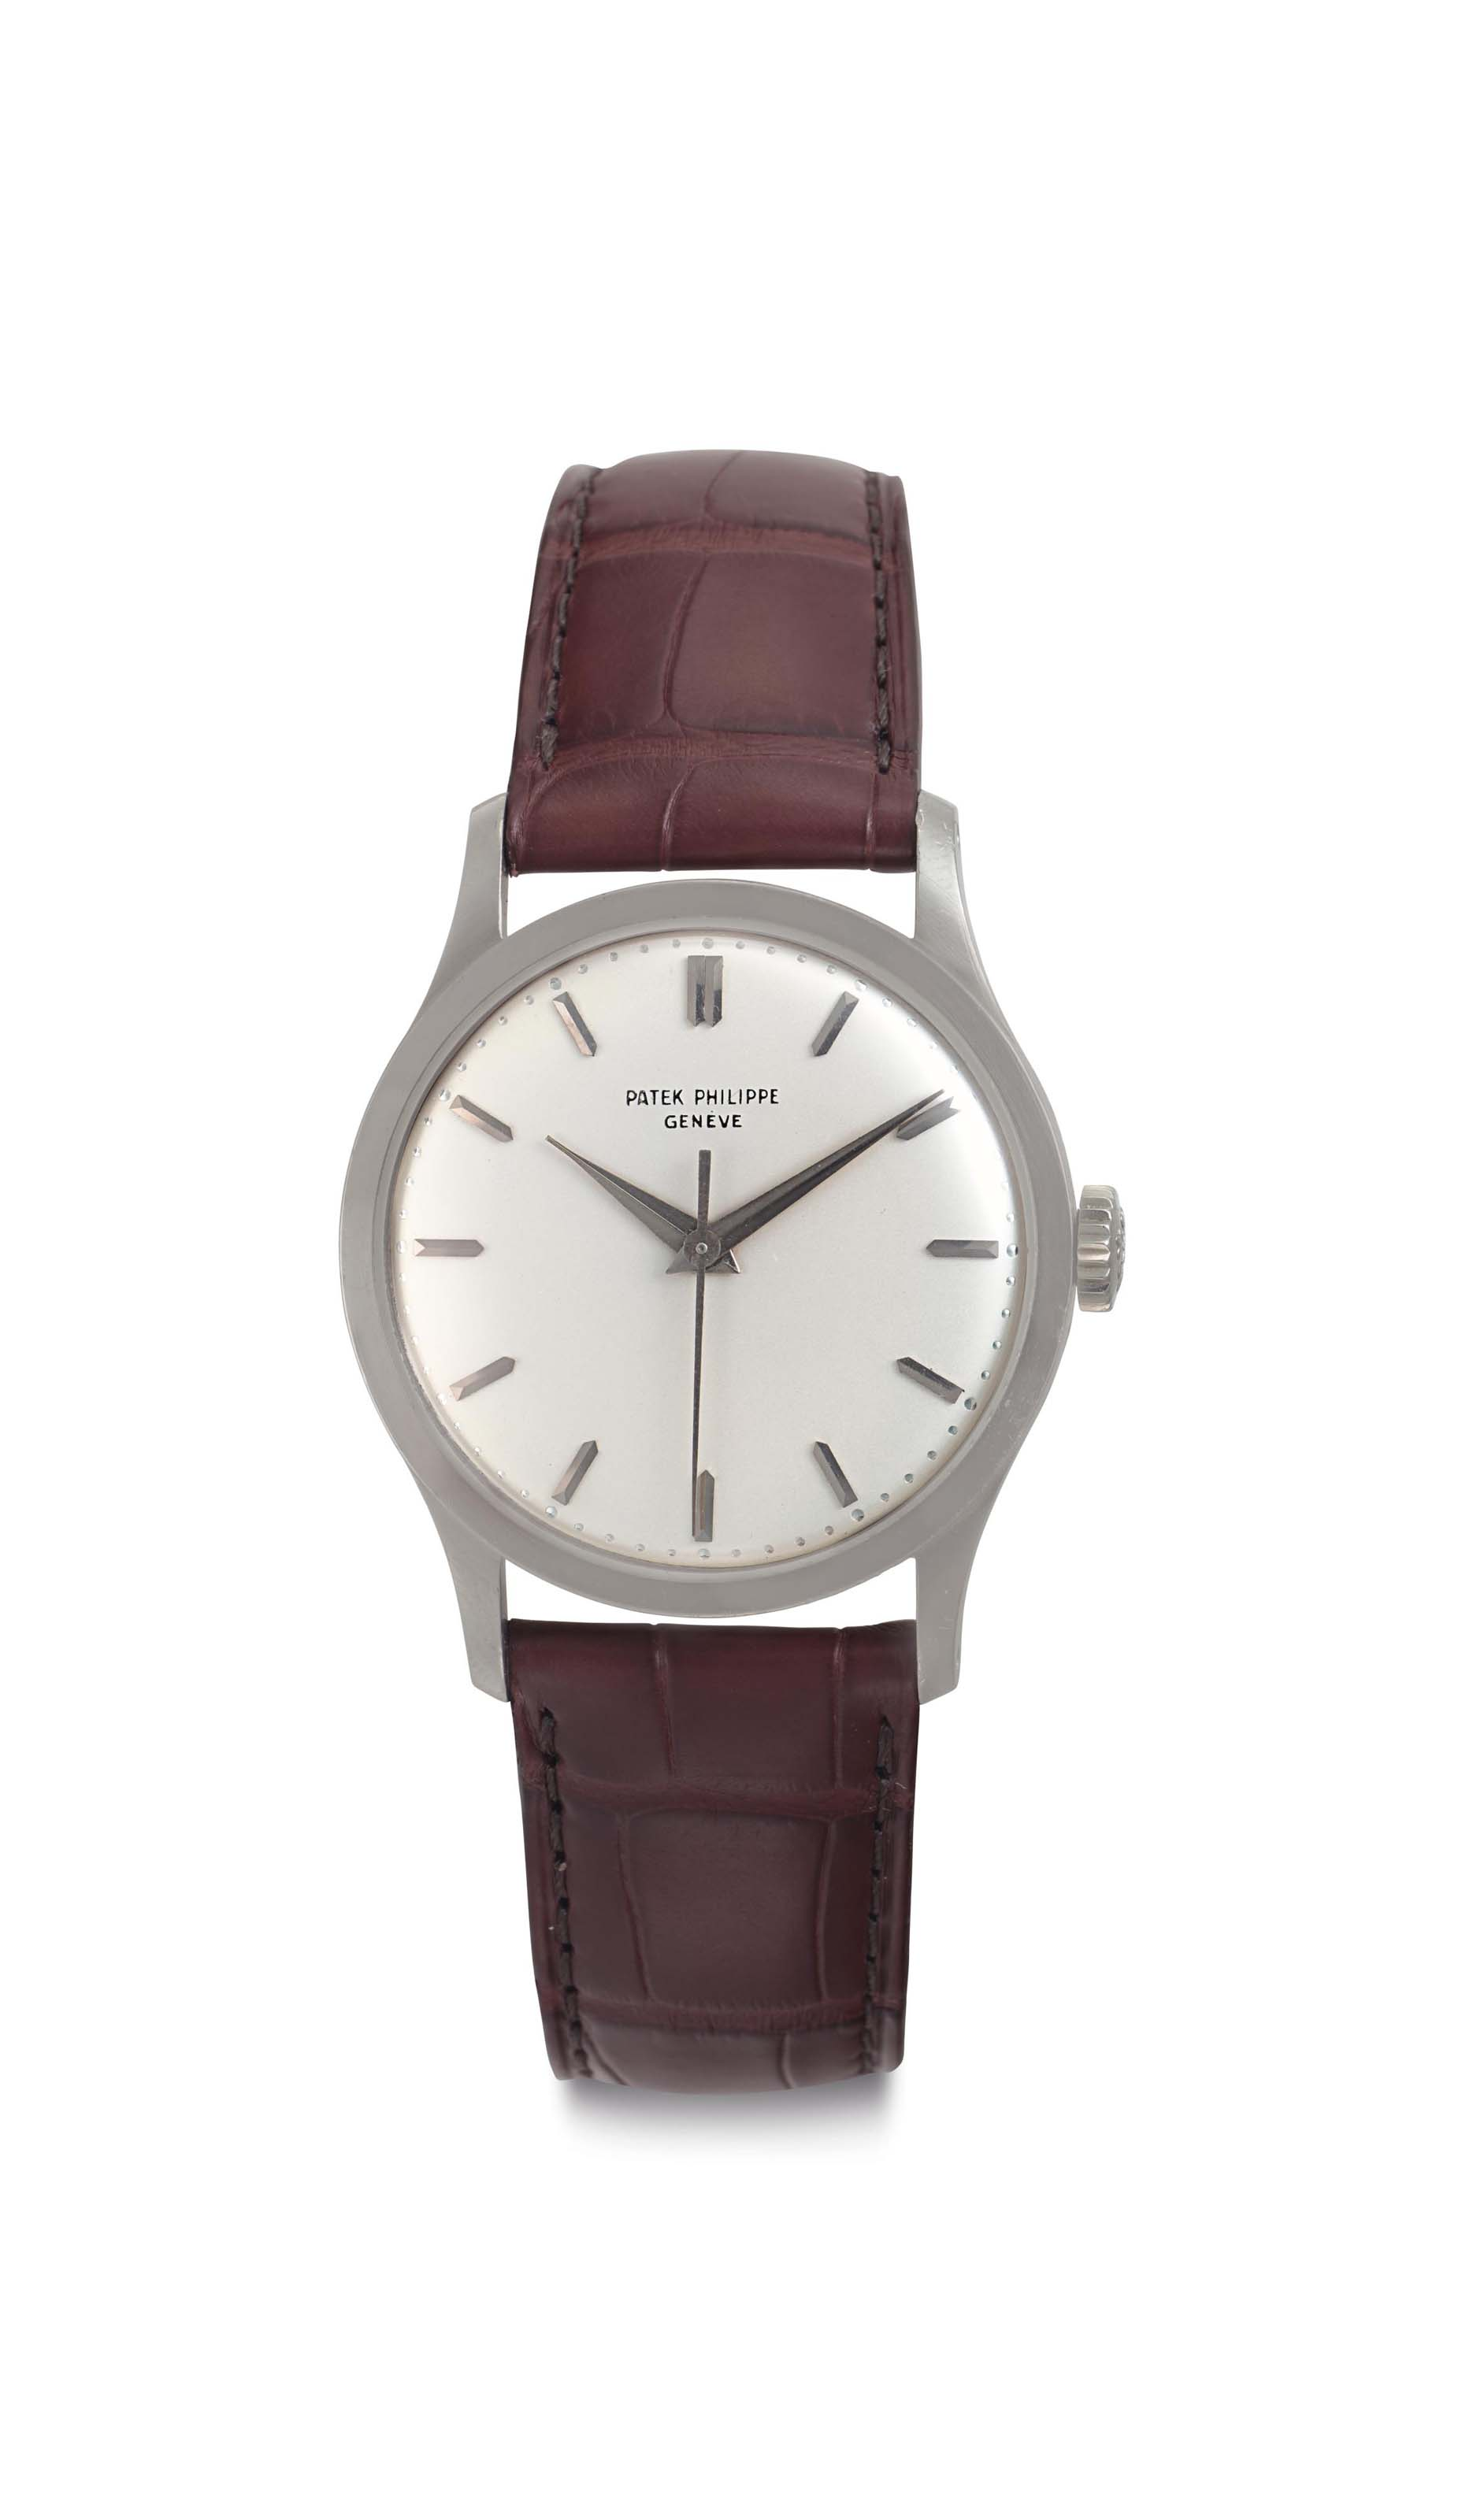 Patek Philippe. A Fine 18k White Gold Wristwatch with Center Seconds